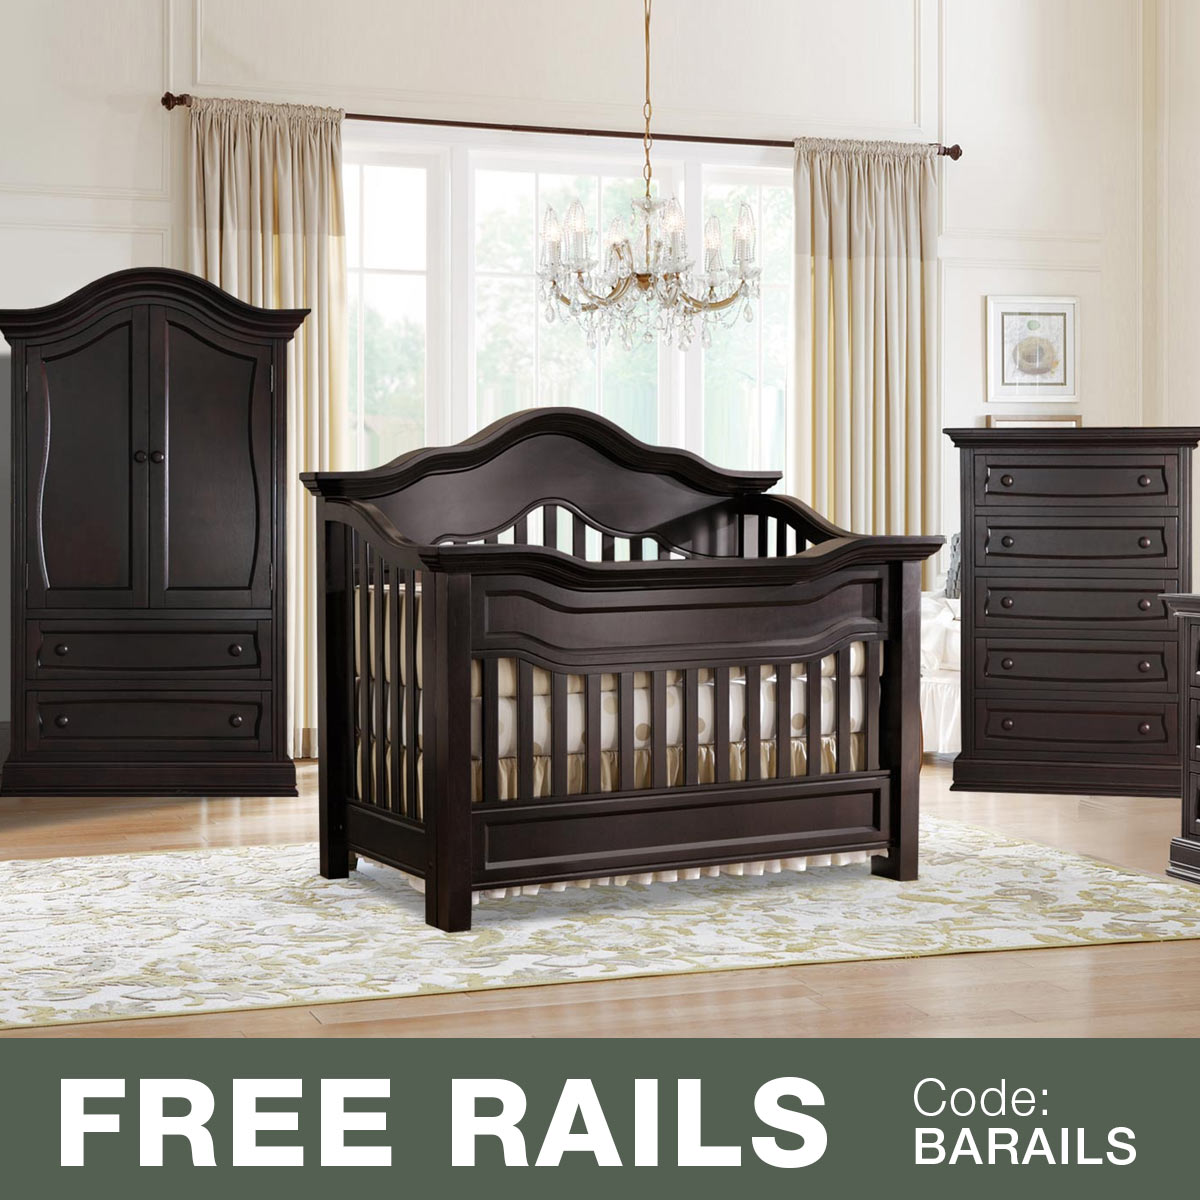 Baby Appleseed 3 Piece Nursery Set   Millbury 3 In 1 Convertible Crib,  Davenport 5 Drawer Tall Dresser And Armoire In Pure White FREE SHIPPING